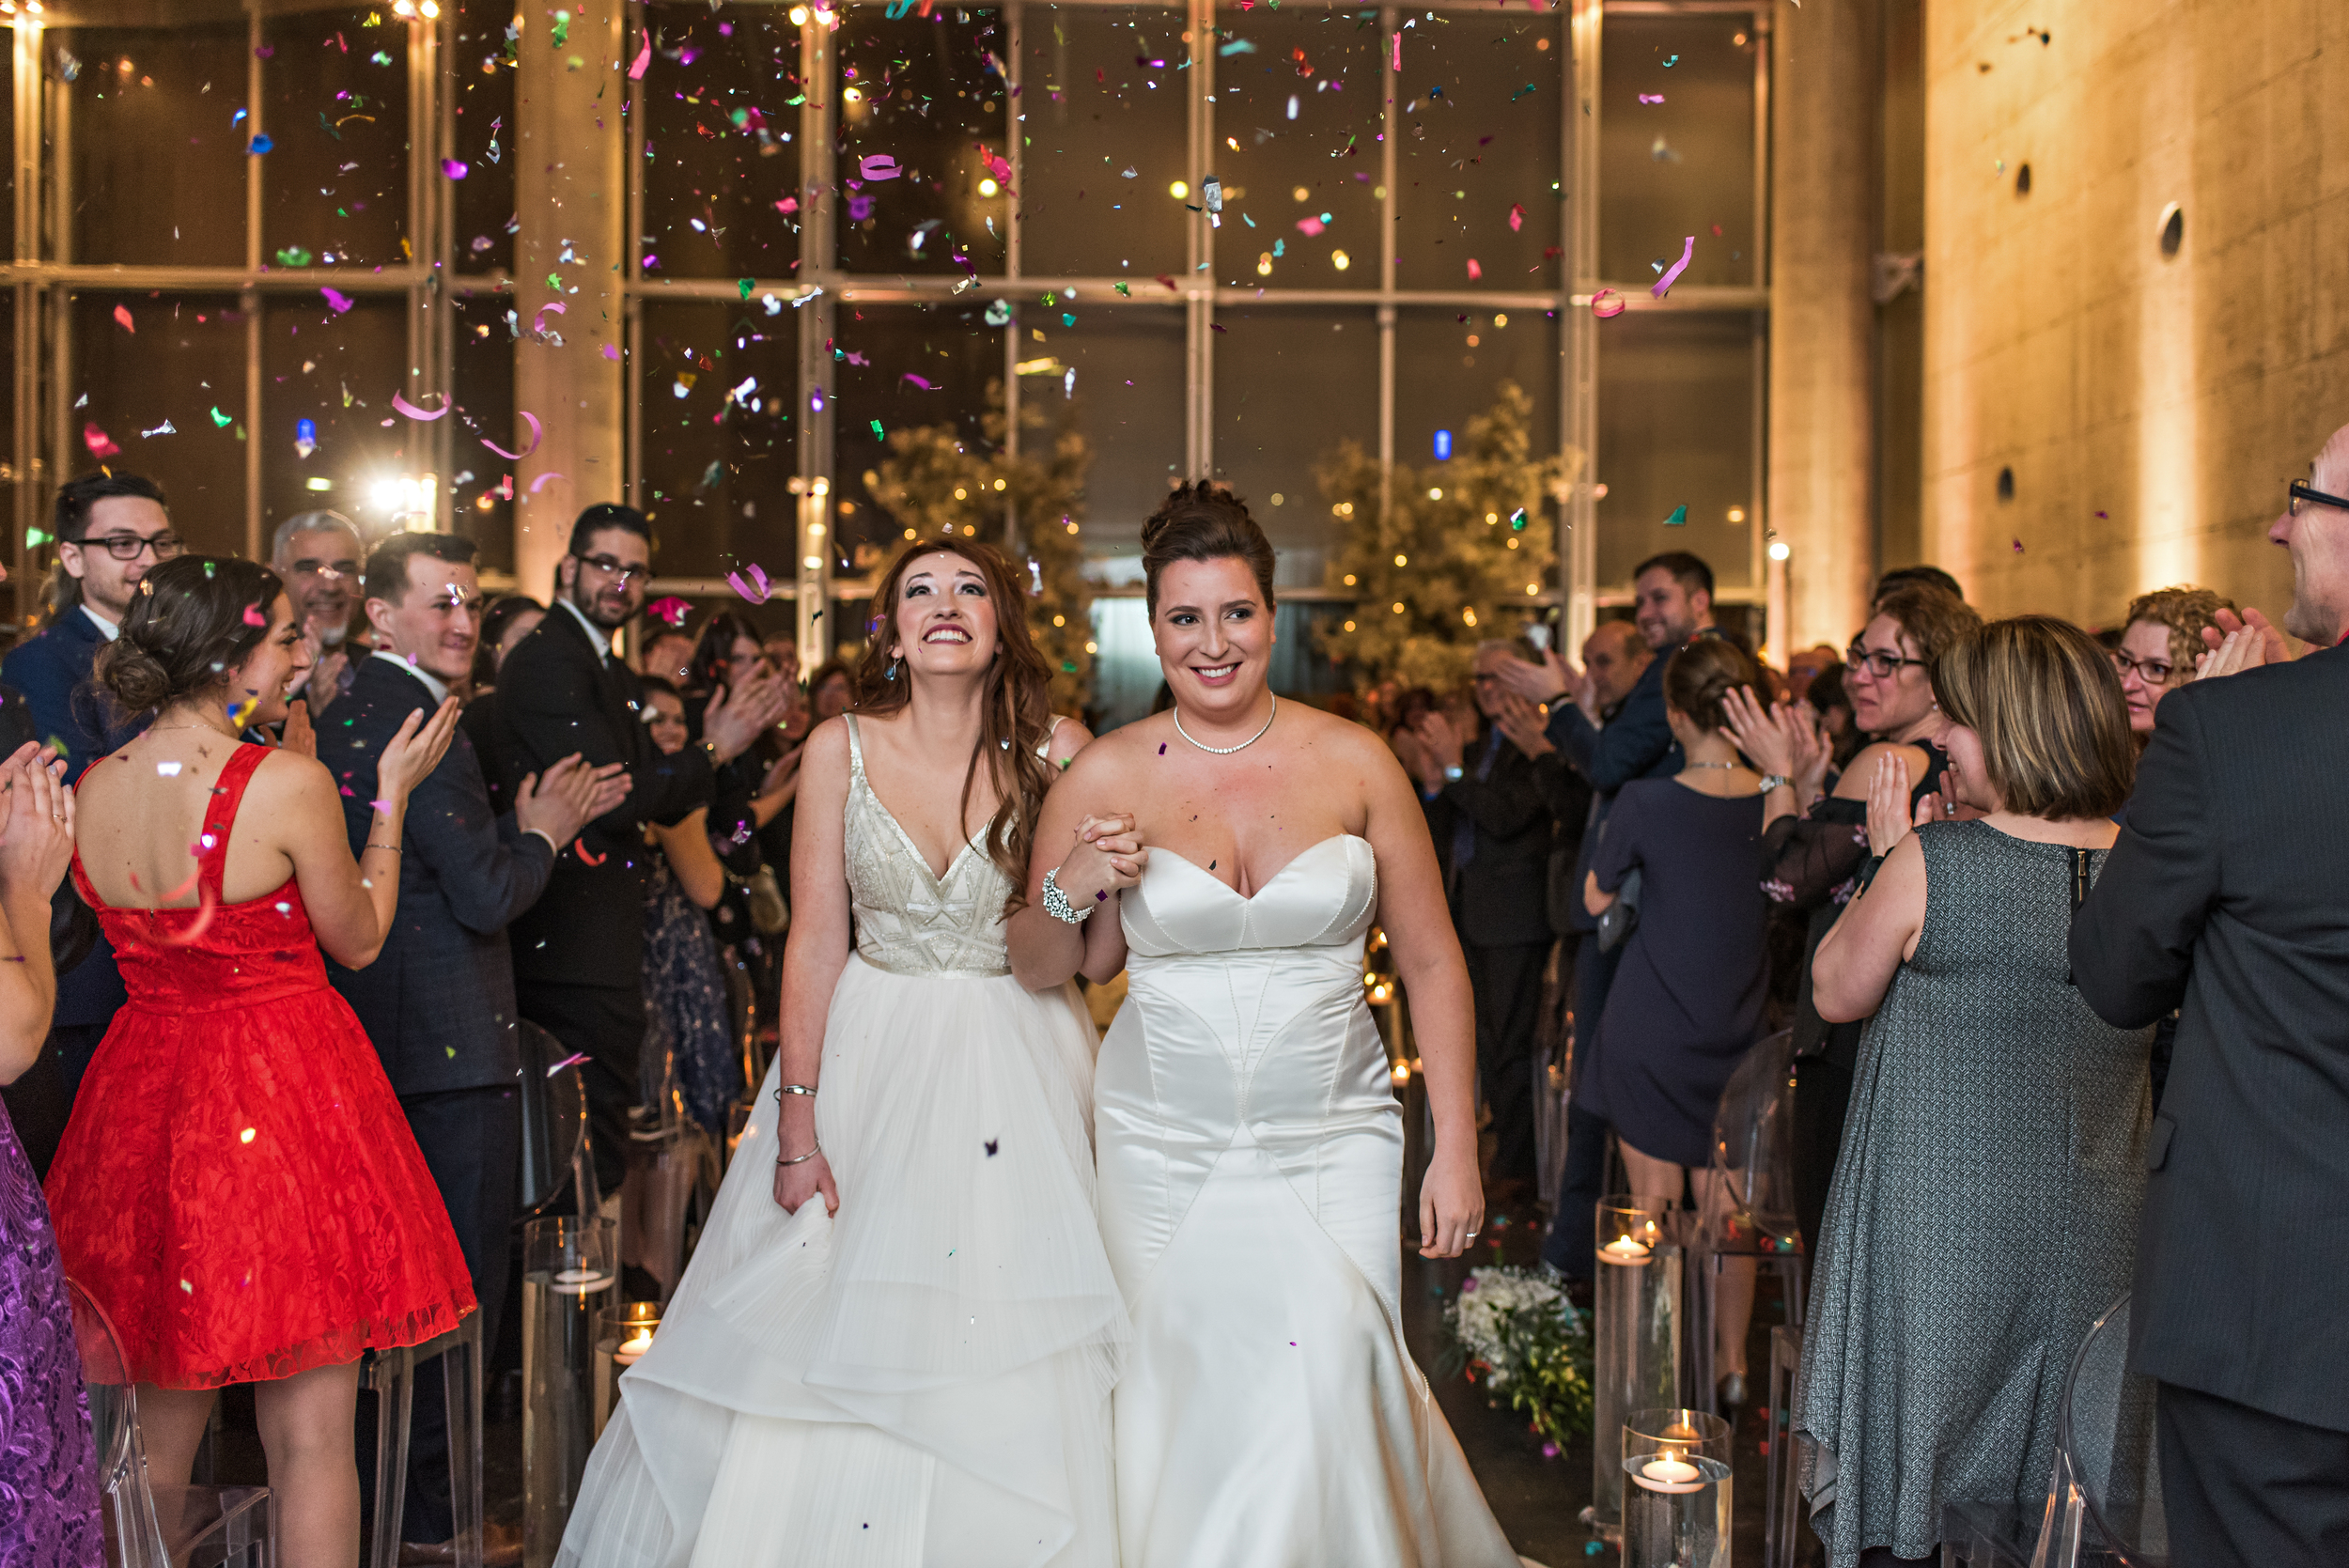 The two brides walking hand in hand leaving their wedding ceremony in Quebec City